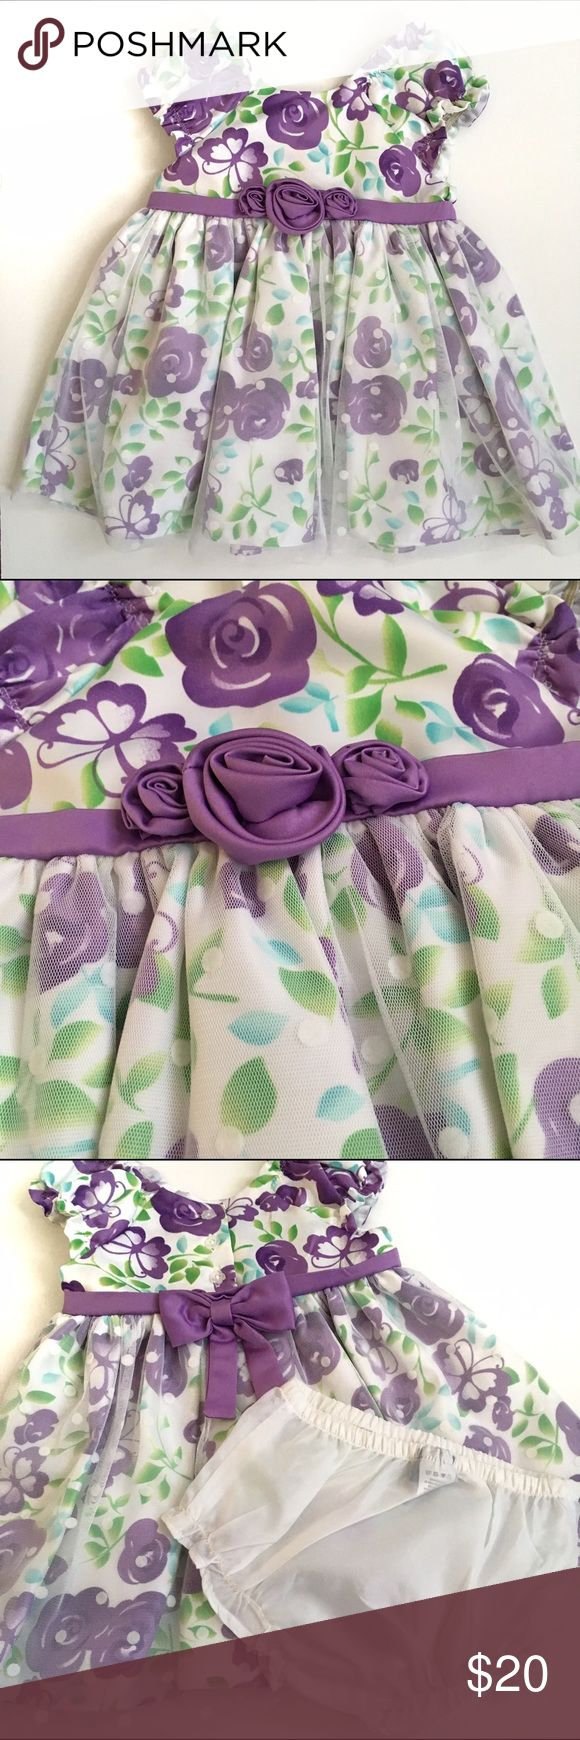 NWOT Formal Spring Dress NWOT Formal Spring Dress. Purple flowers and green leaf design. Shirt has a white polka for tulle overlay. elastic inseam on shoulders to ensure Dress stays put. Purple sash with bow on back with snap button closure. Also come with diaper cover. Dresses Formal